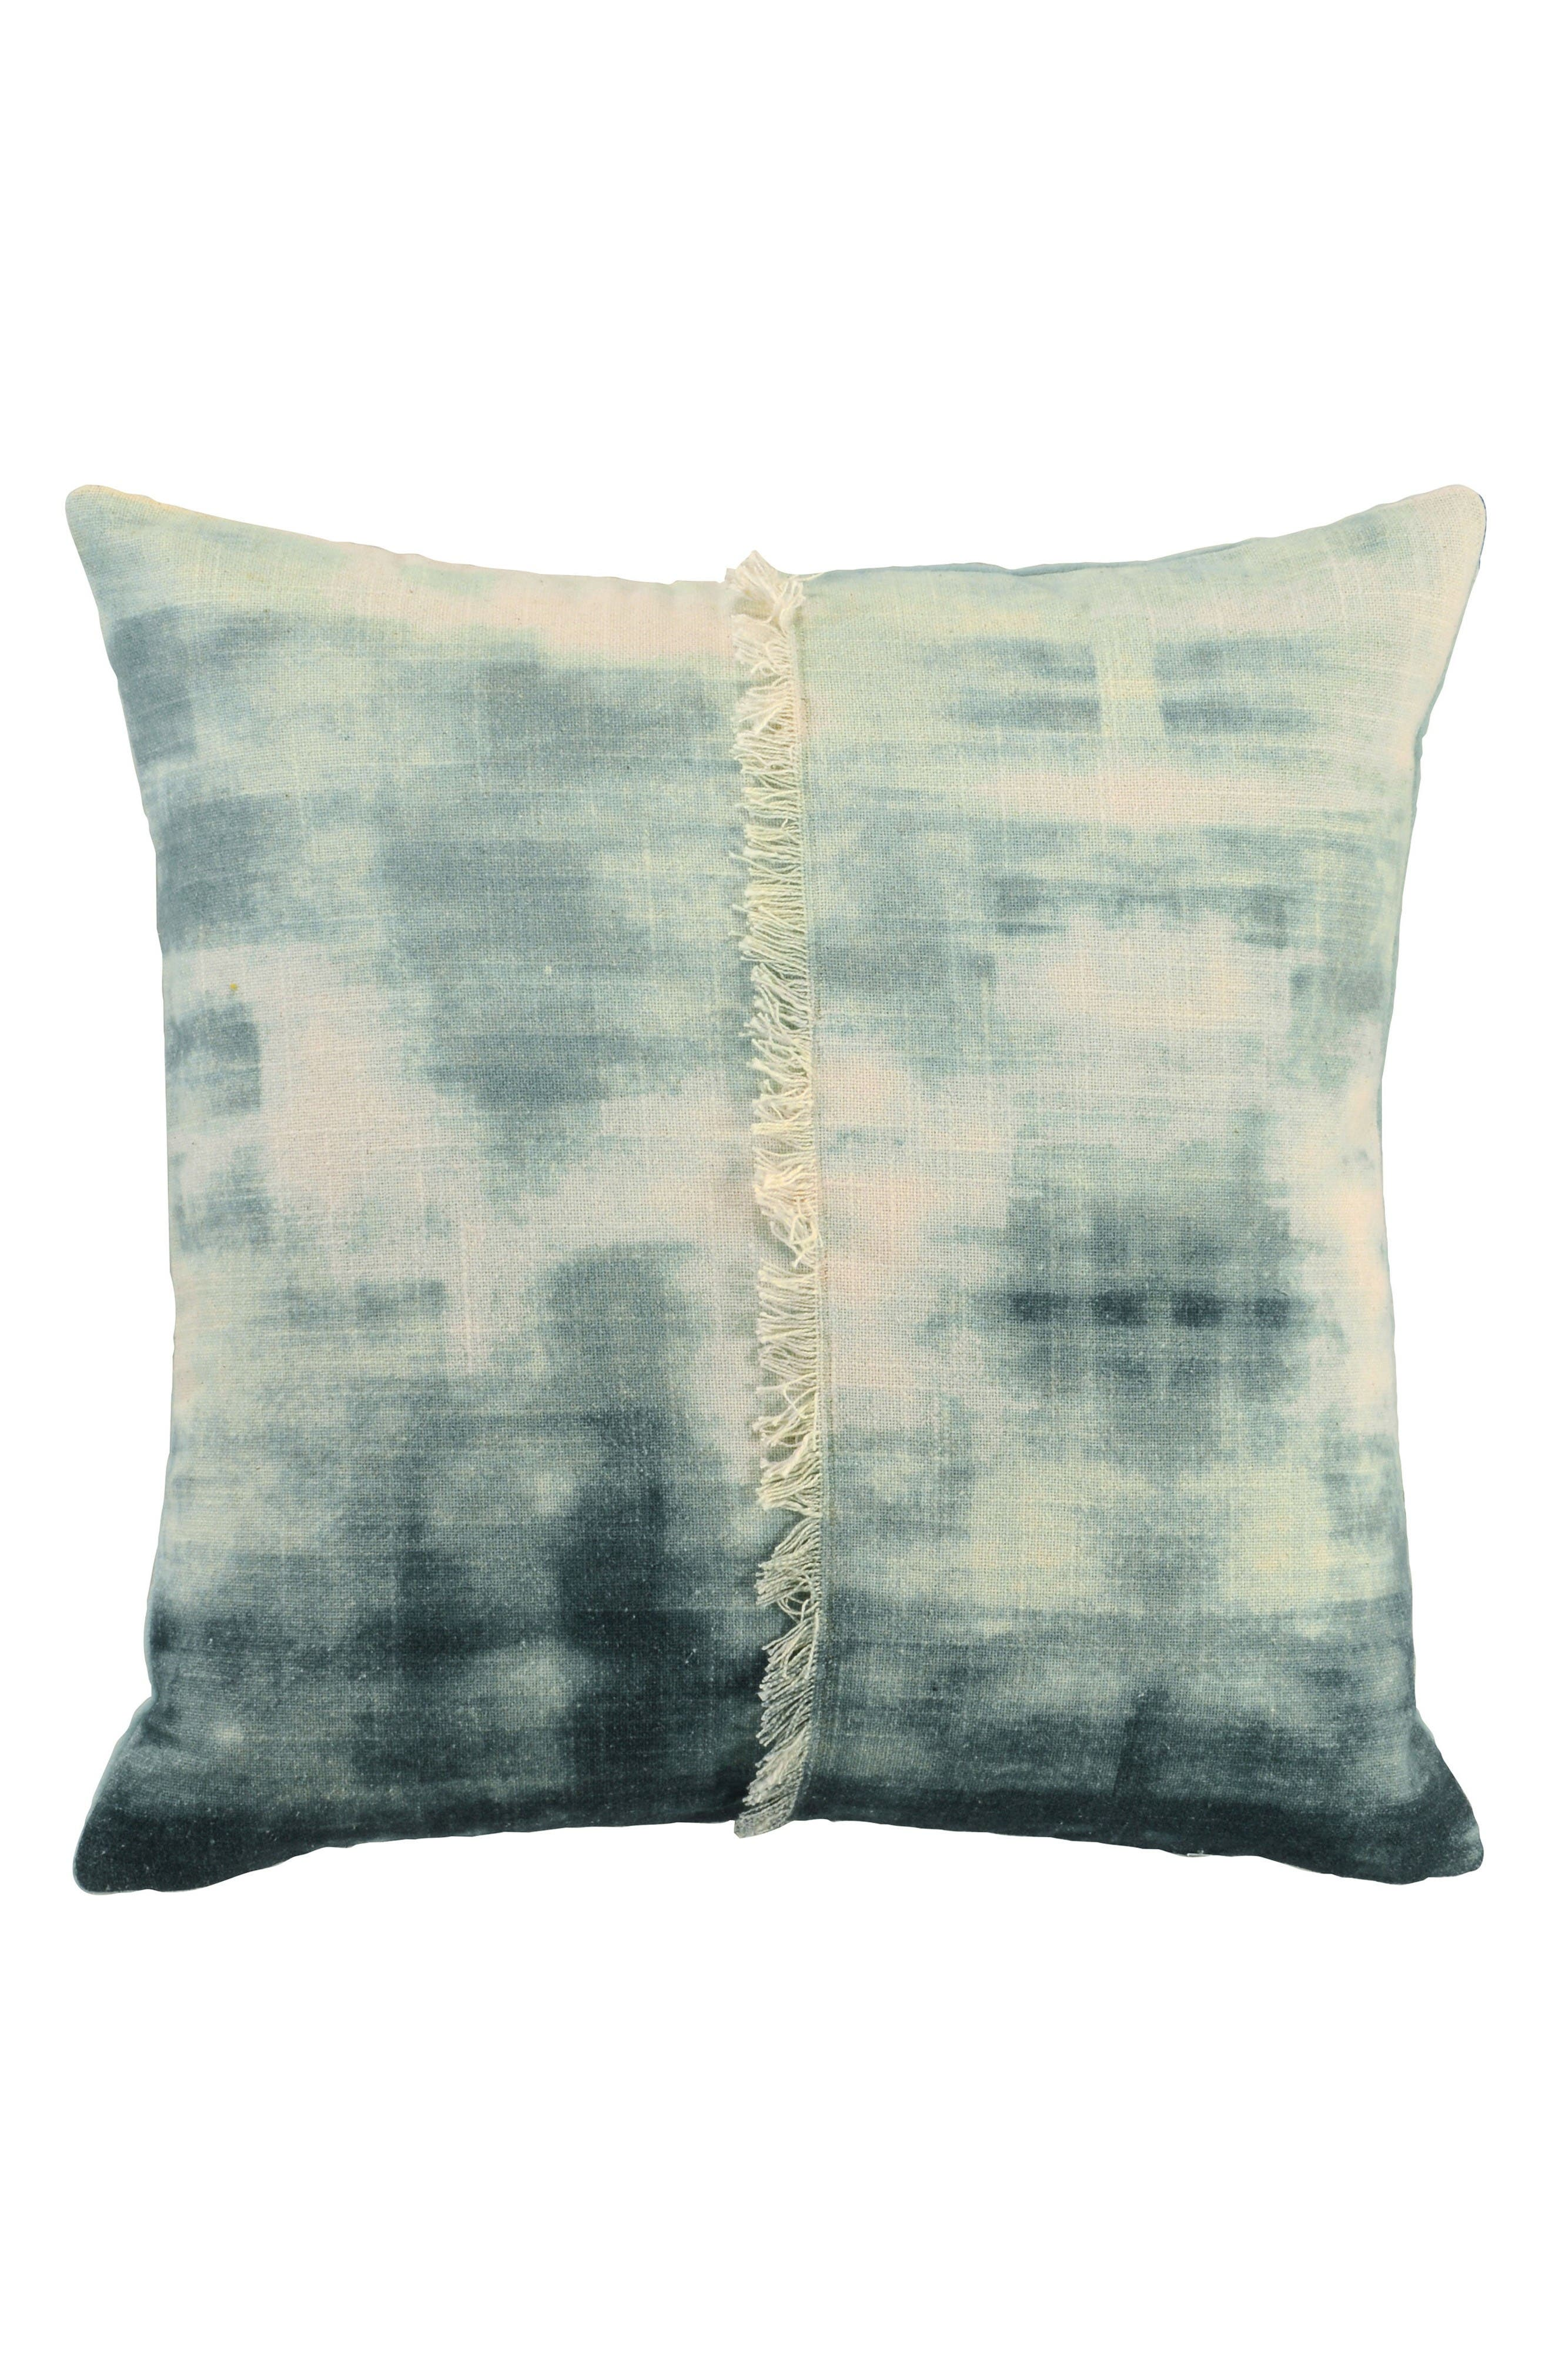 Kino Tidal Accent Pillow,                         Main,                         color, Seaglass Blue